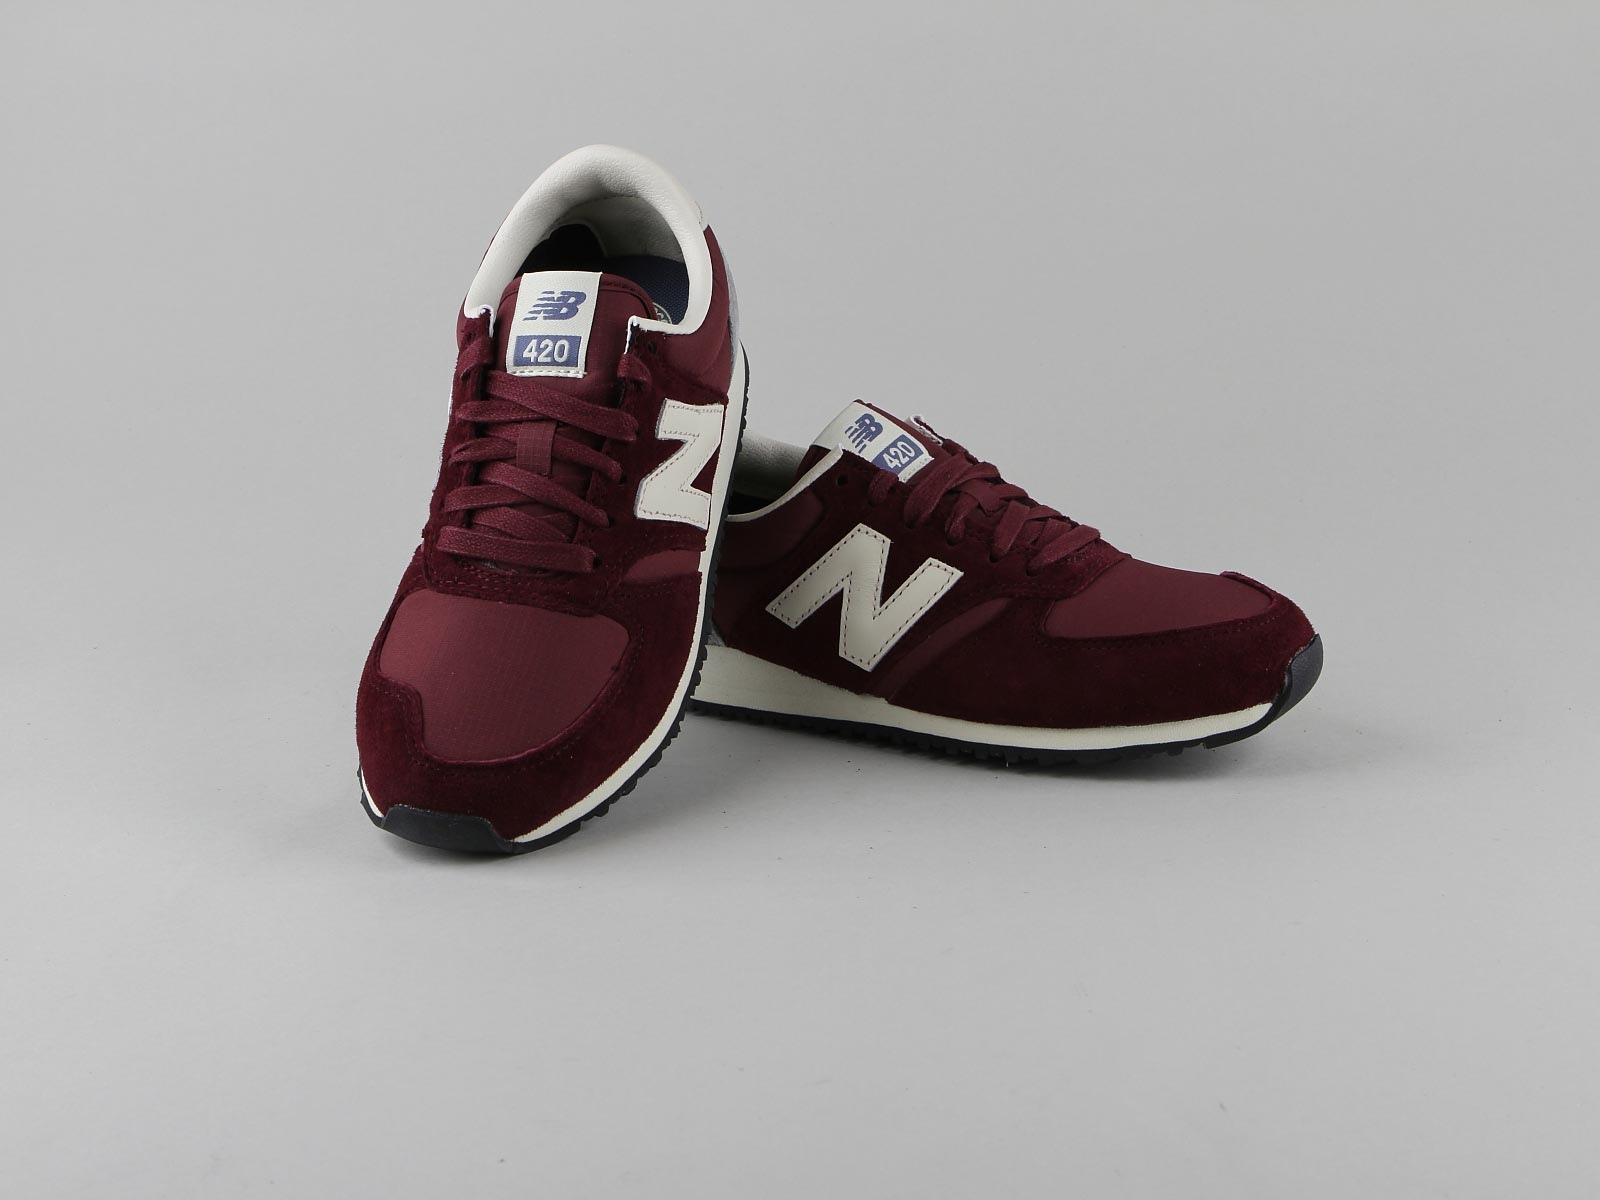 d39cea6a6797 Chaussures New Balance rouge bordeaux femme SD3Xo - infirmary ...